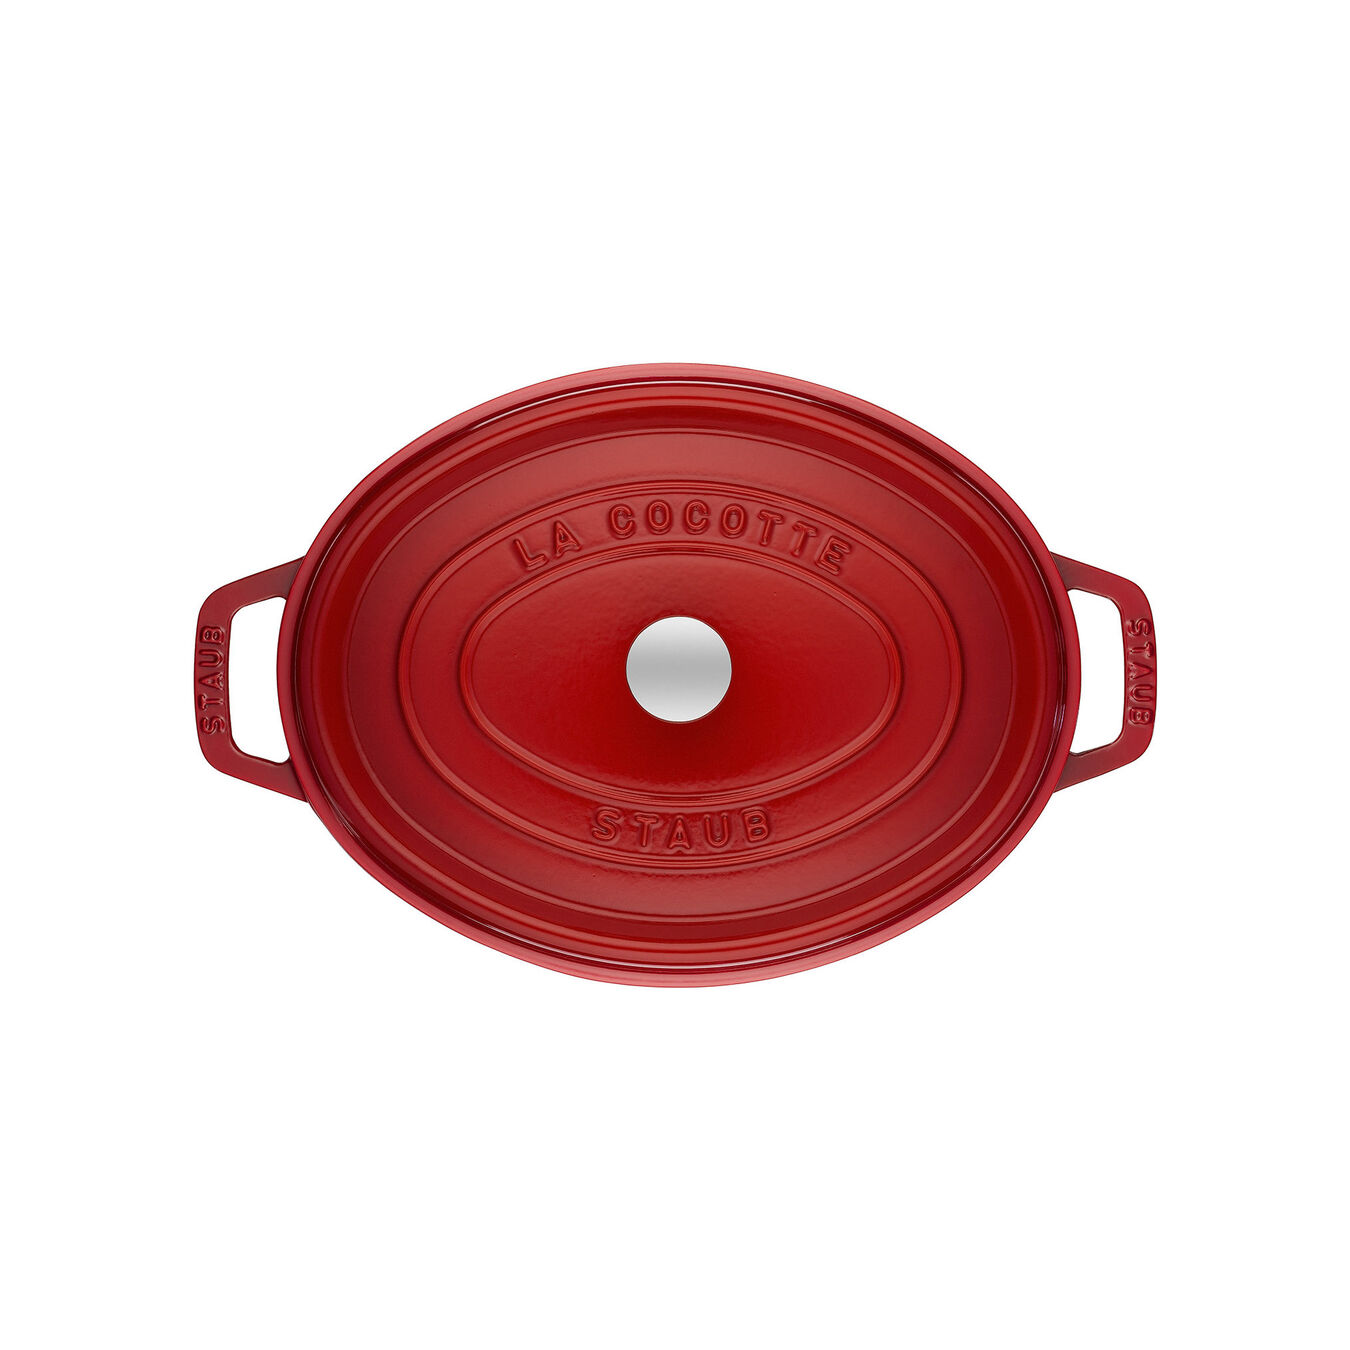 Cocotte 31 cm, oval, Kirsch-Rot, Gusseisen,,large 5